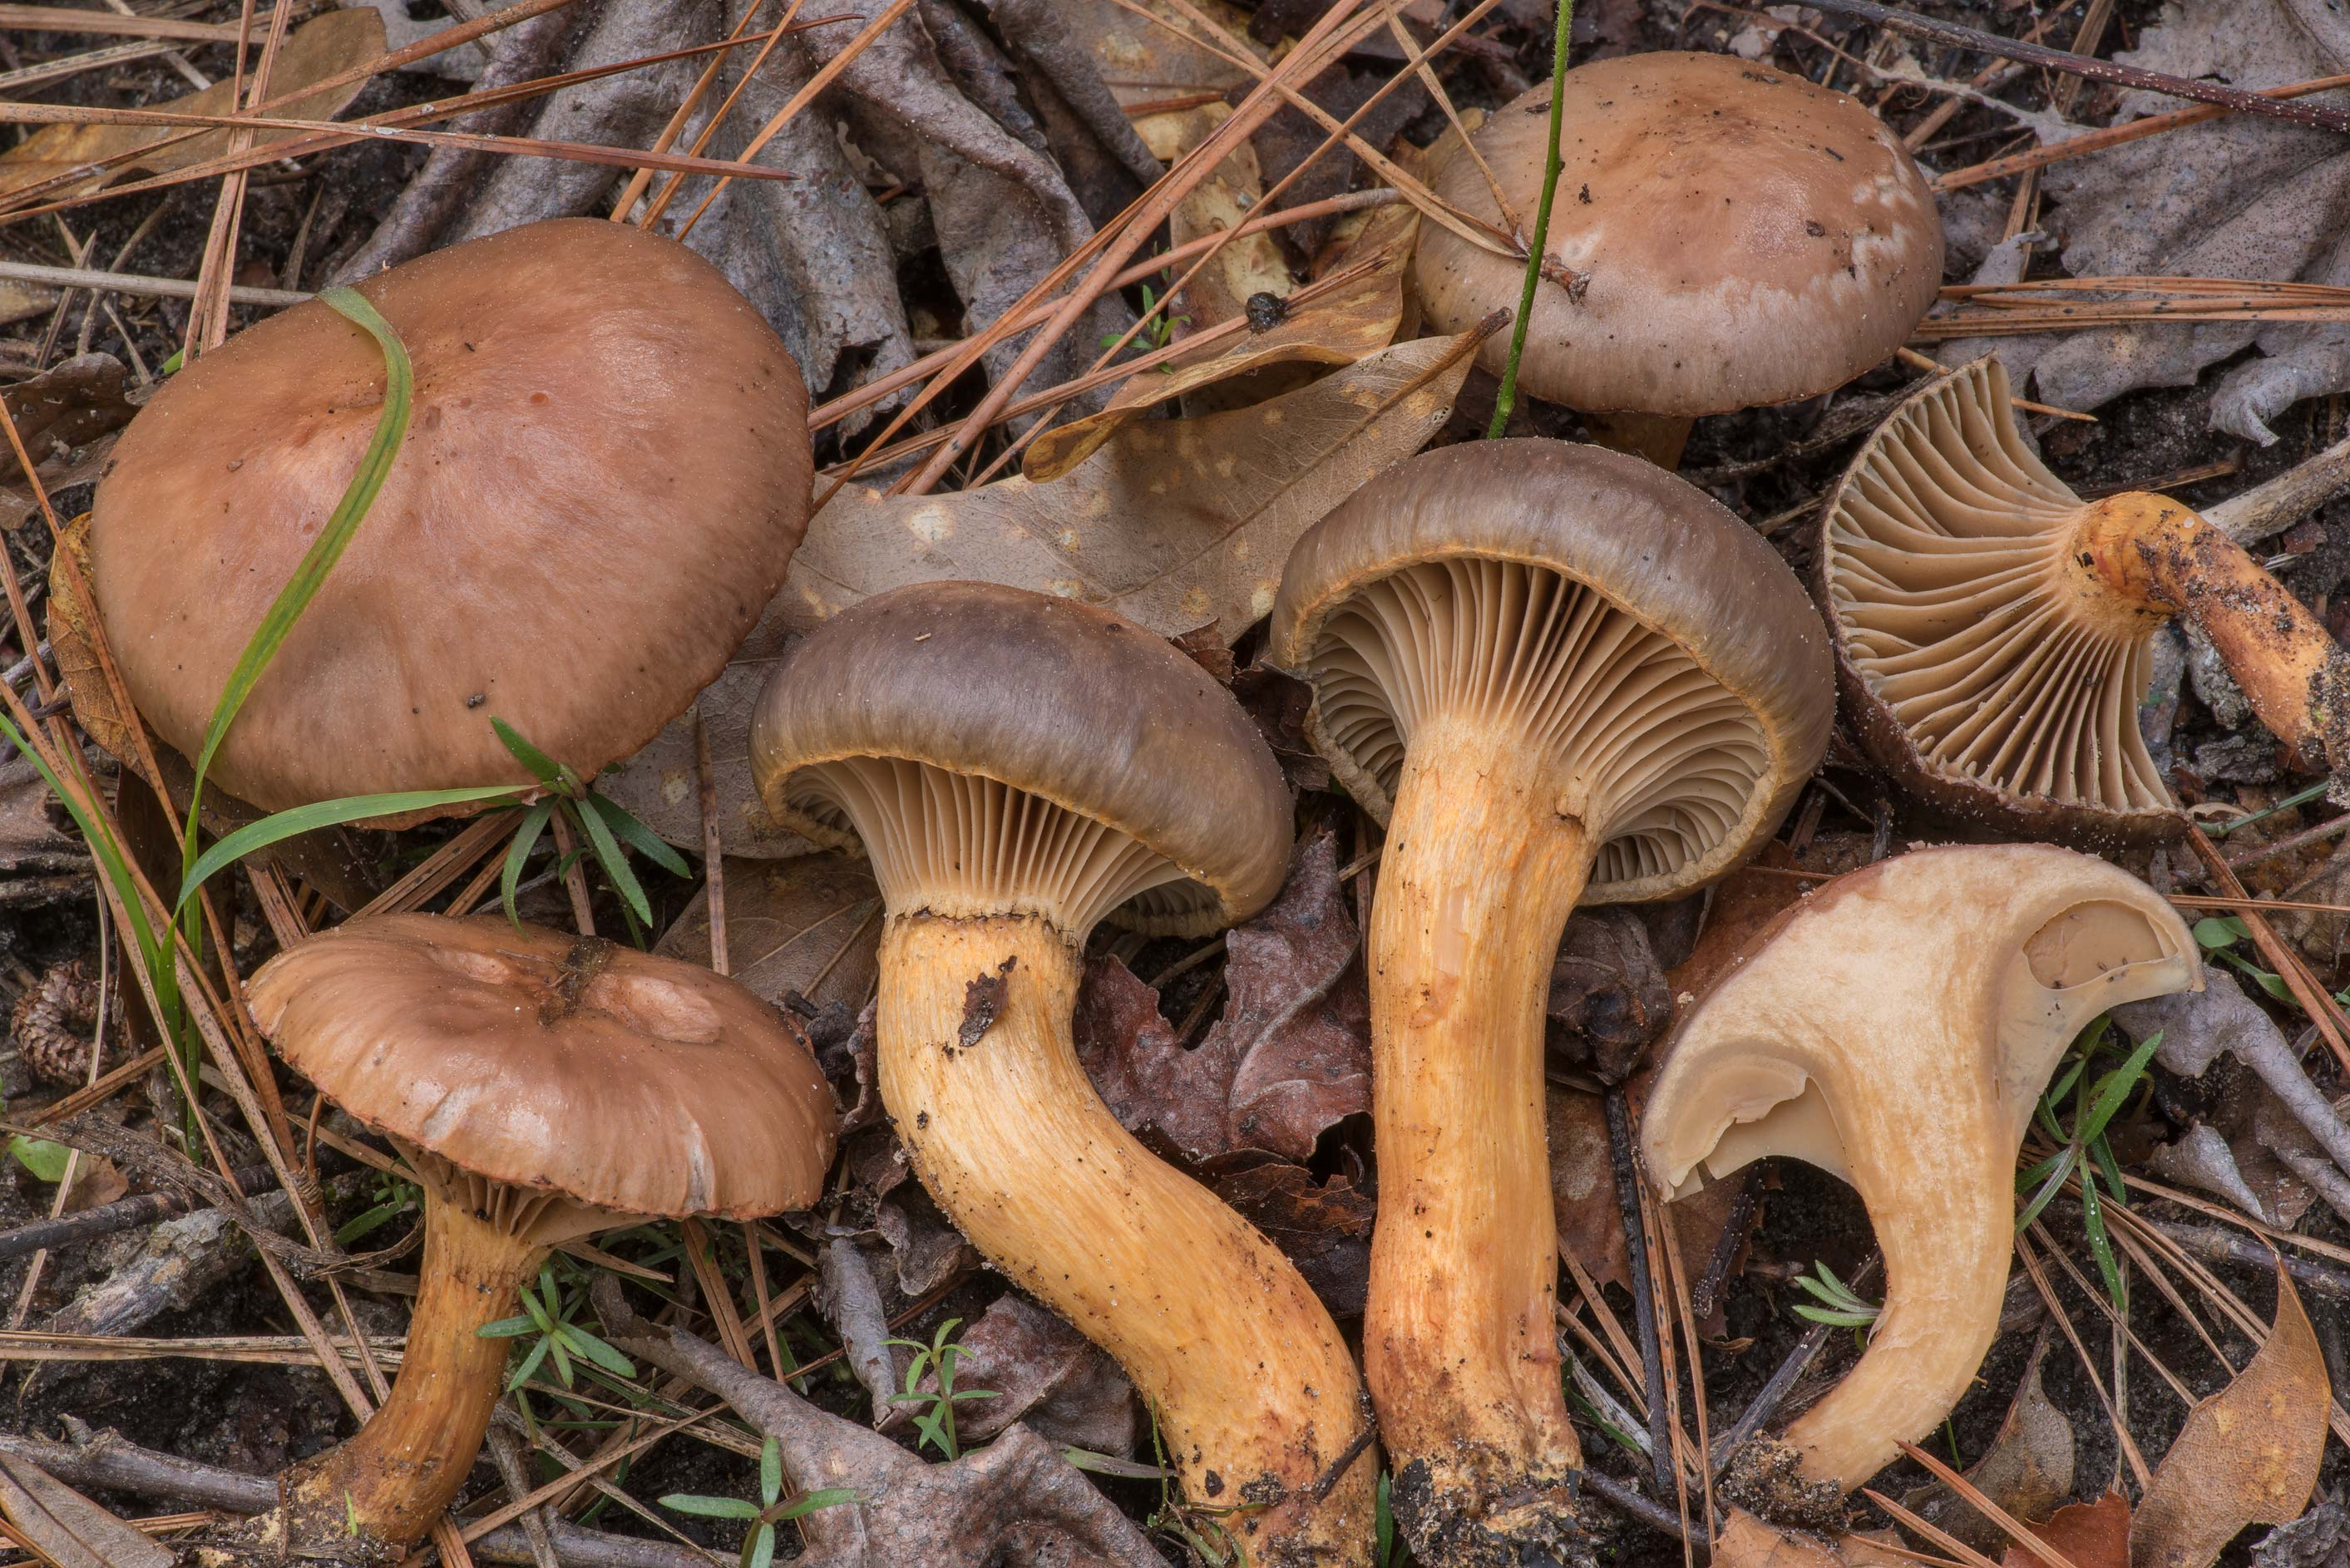 Pine spike mushrooms (wine-cap Chroogomphus...National Forest. Huntsville, Texas